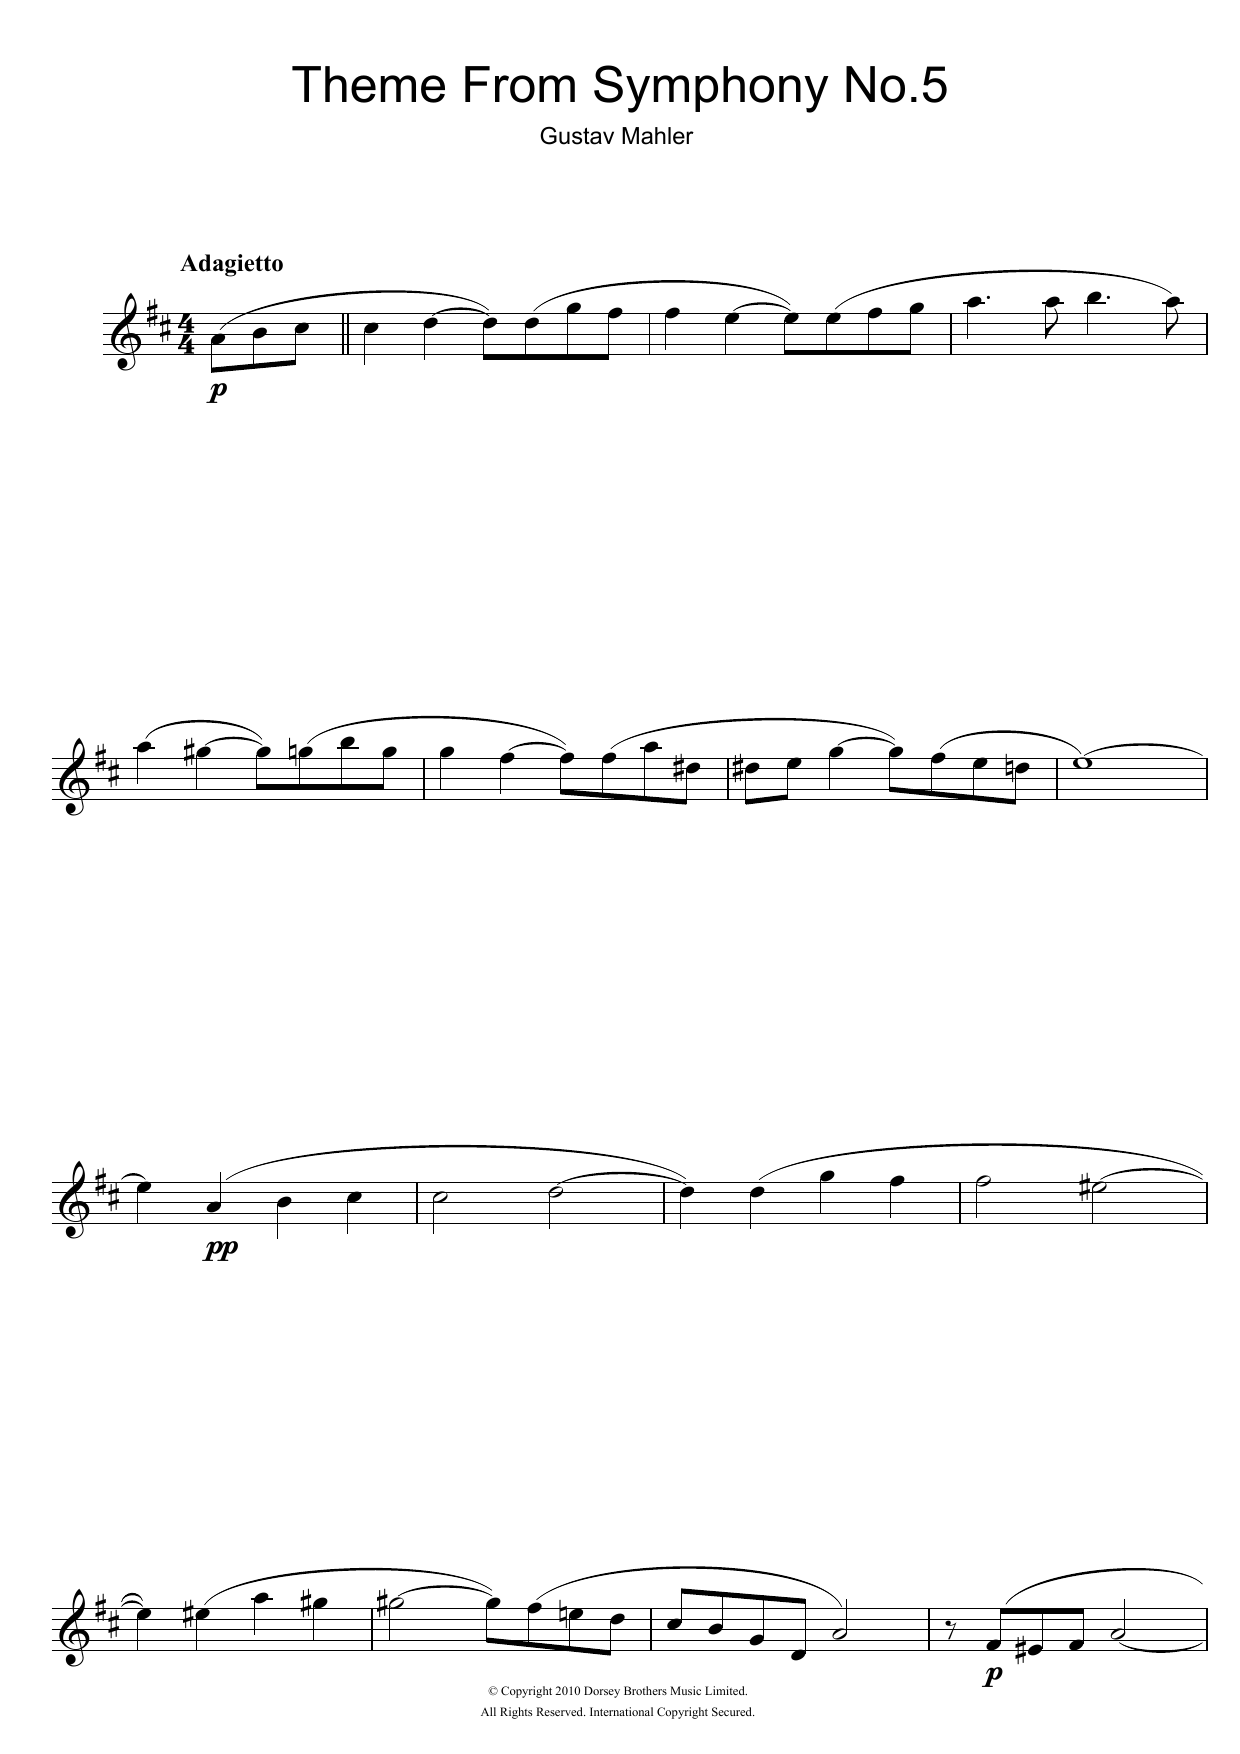 Adagietto (from Symphony No. 5, 4th Movement) Sheet Music